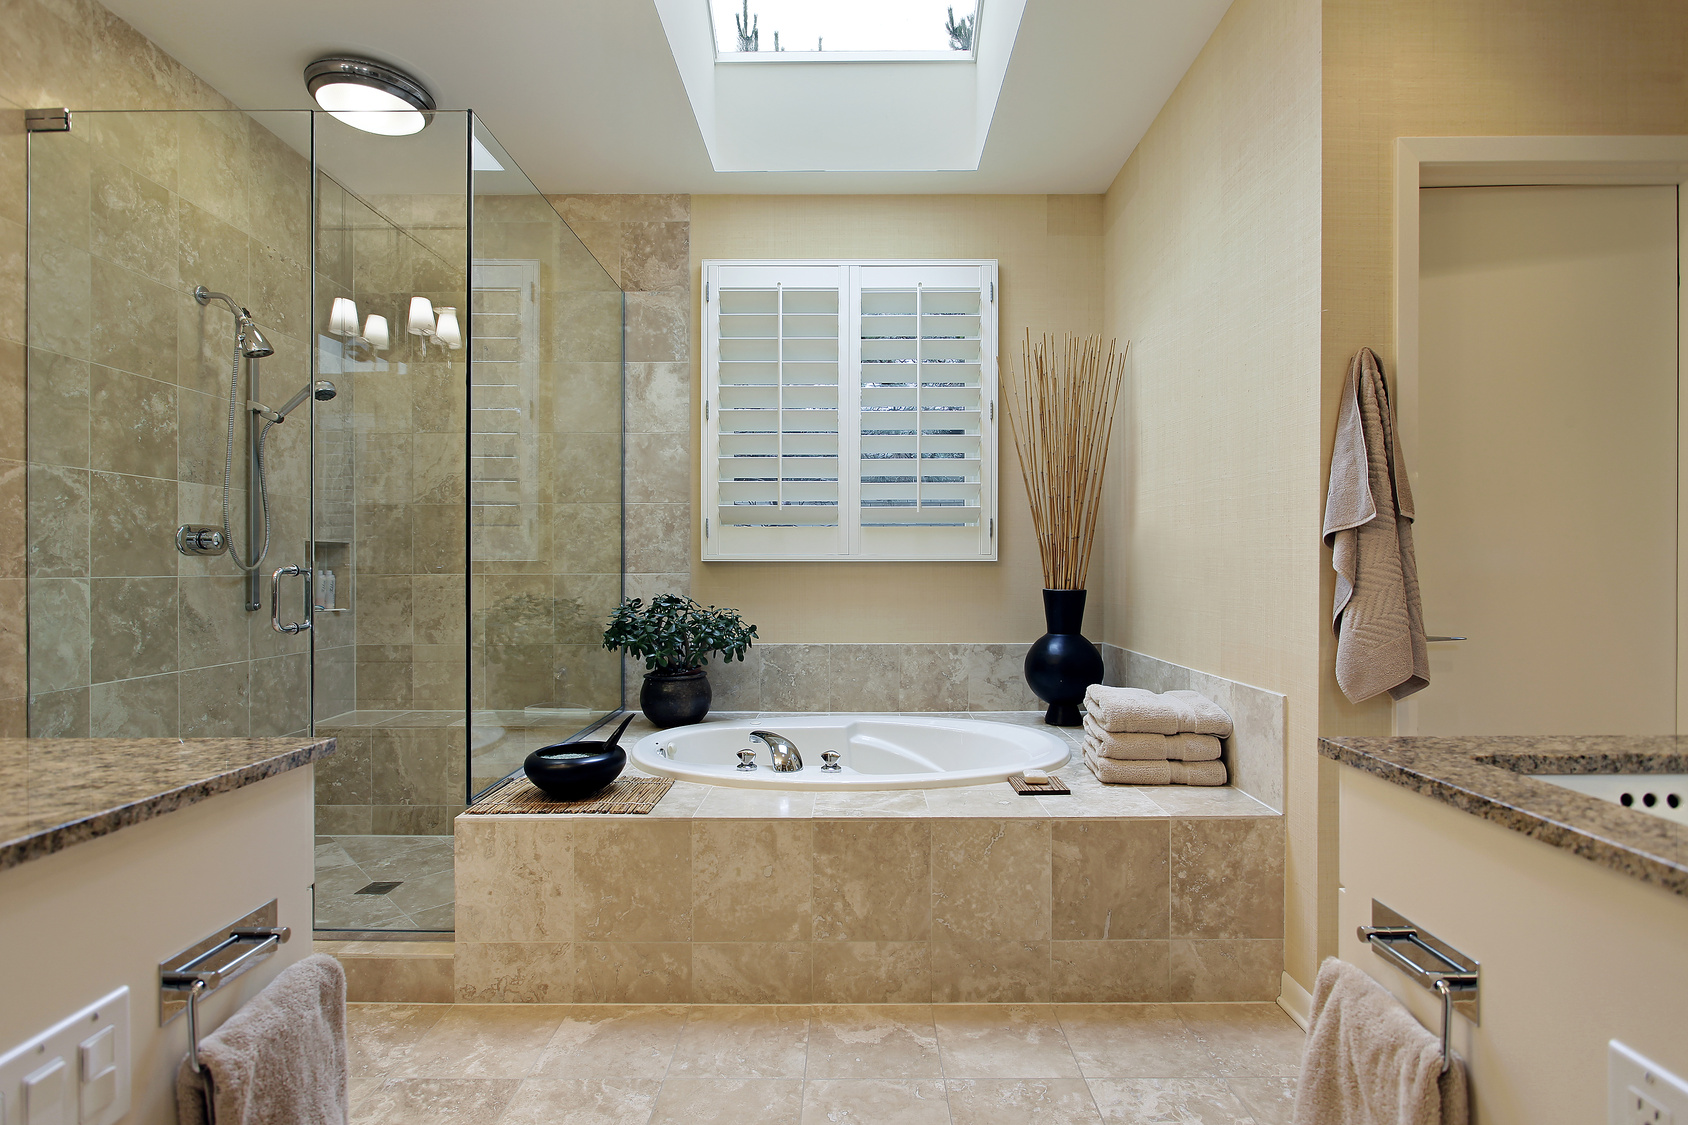 Home bathroom designs - Home Bathroom Designs